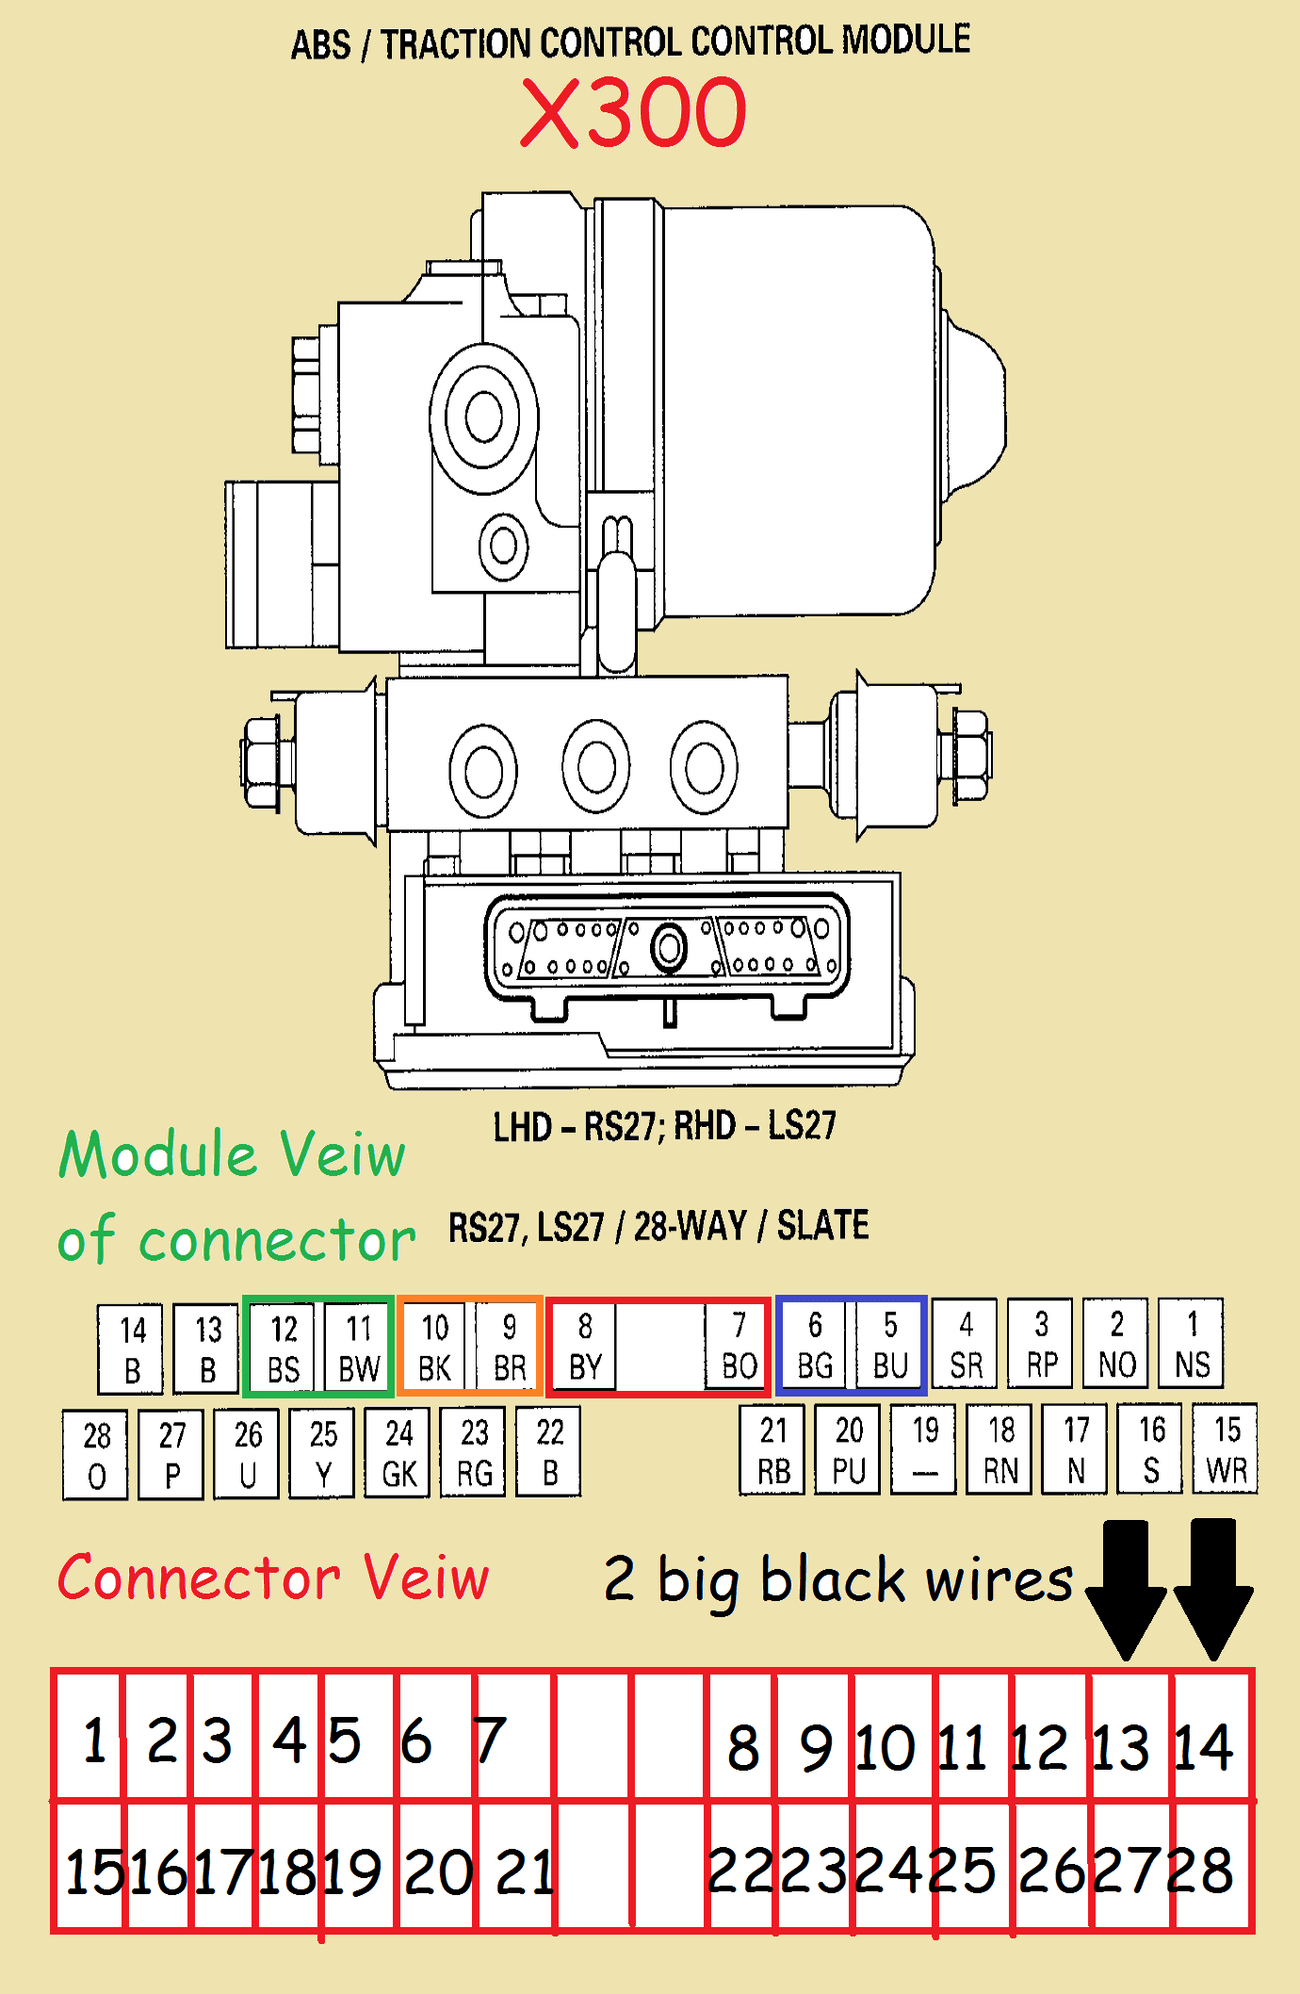 Abs Wiring Diagram For Xj6